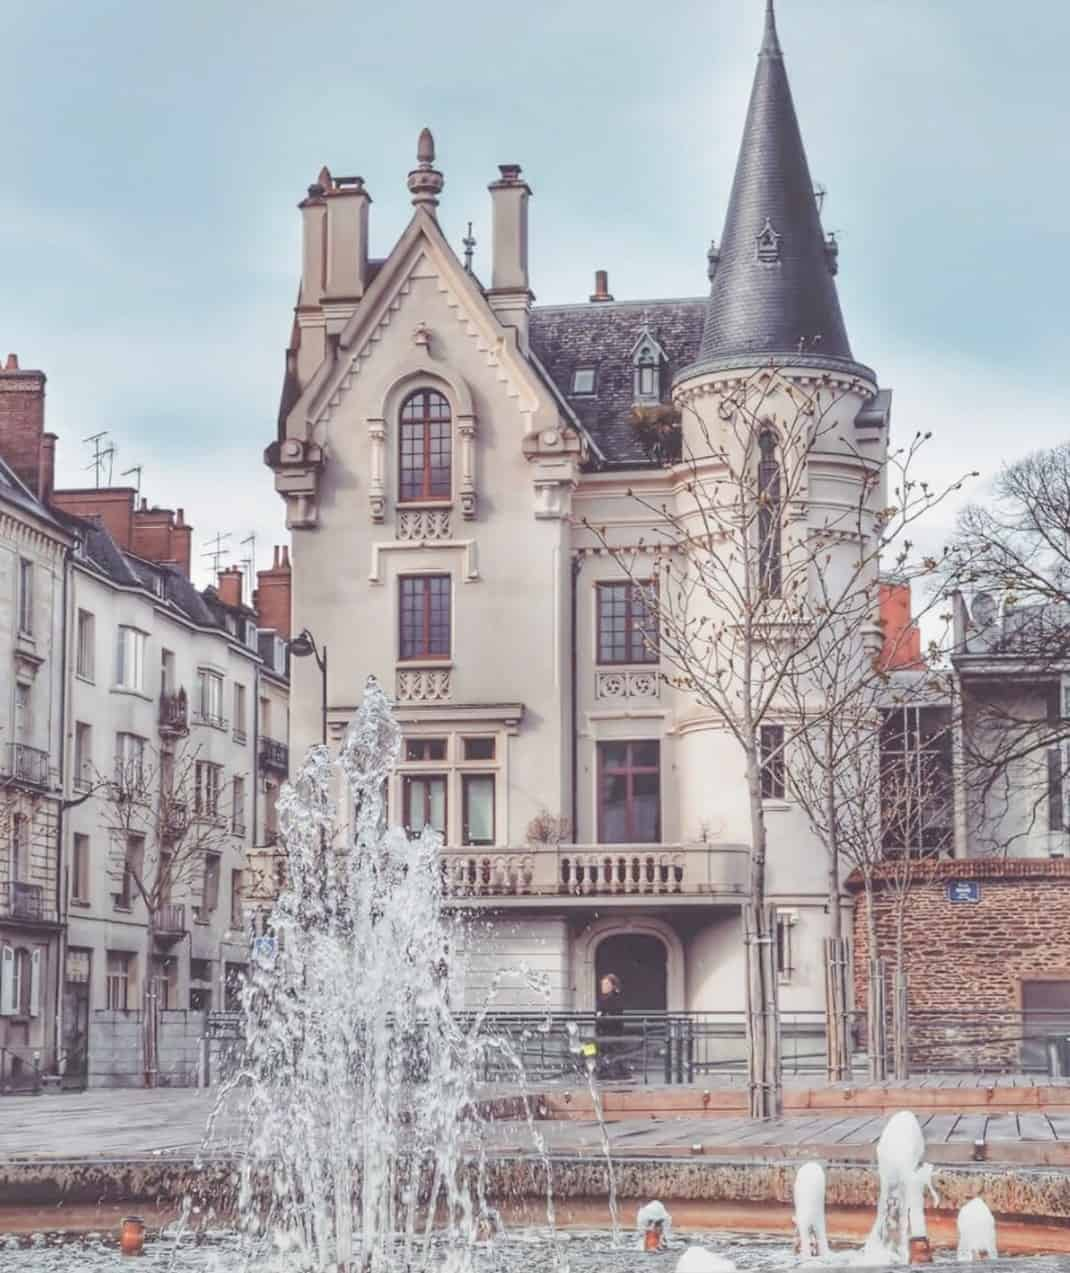 3 Days In Brittany - Musée de Bretagne (Brittany Museum)